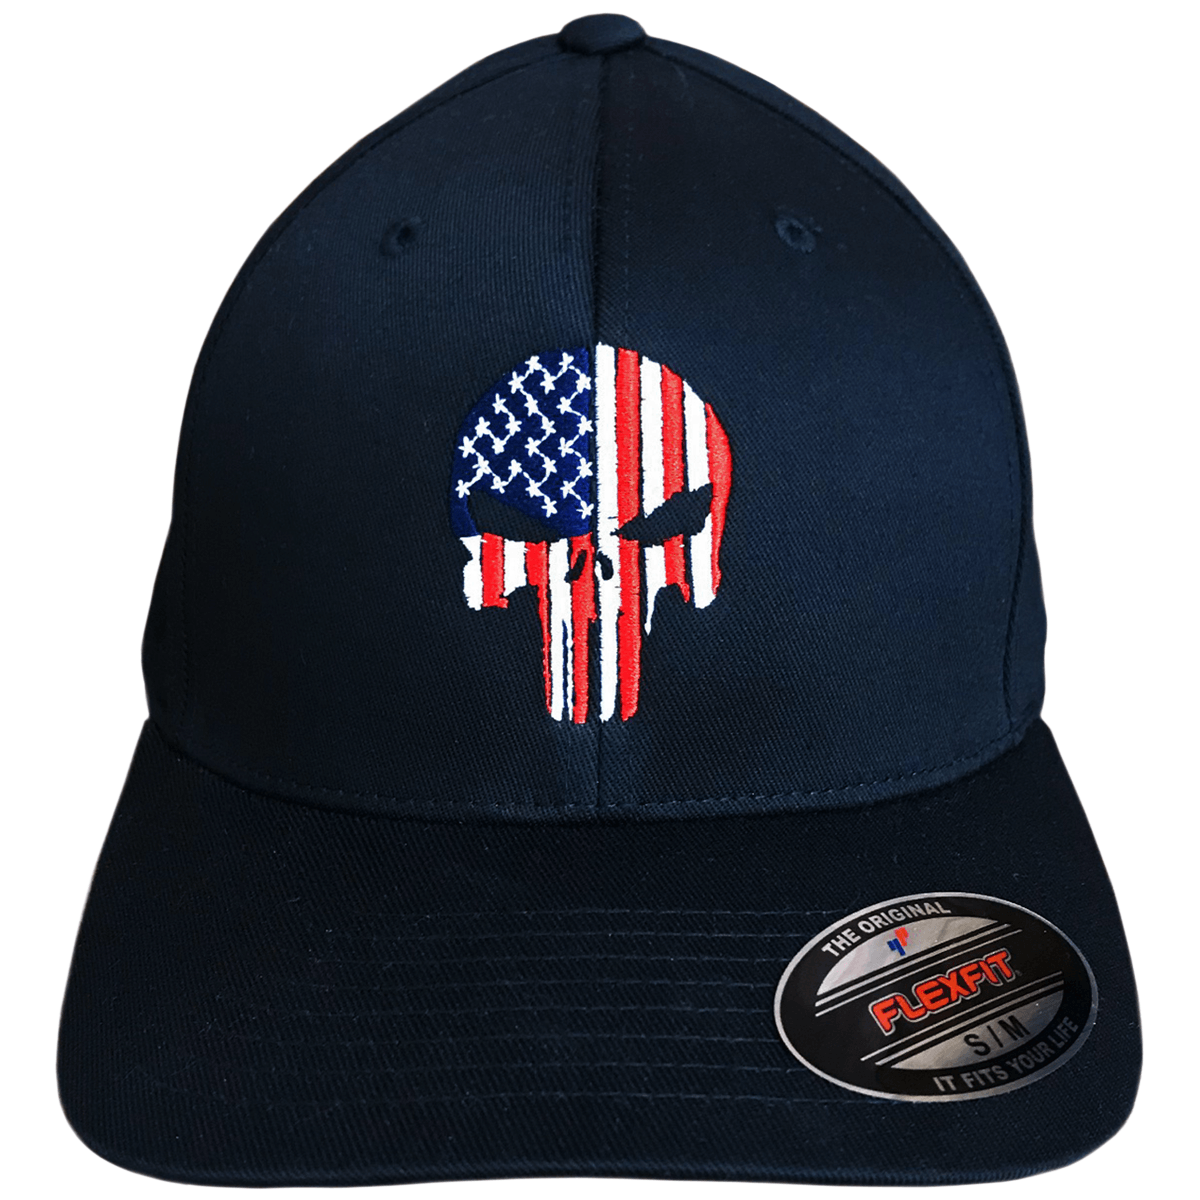 1795f76bfee American Fearless Patriot Flexfit Hat